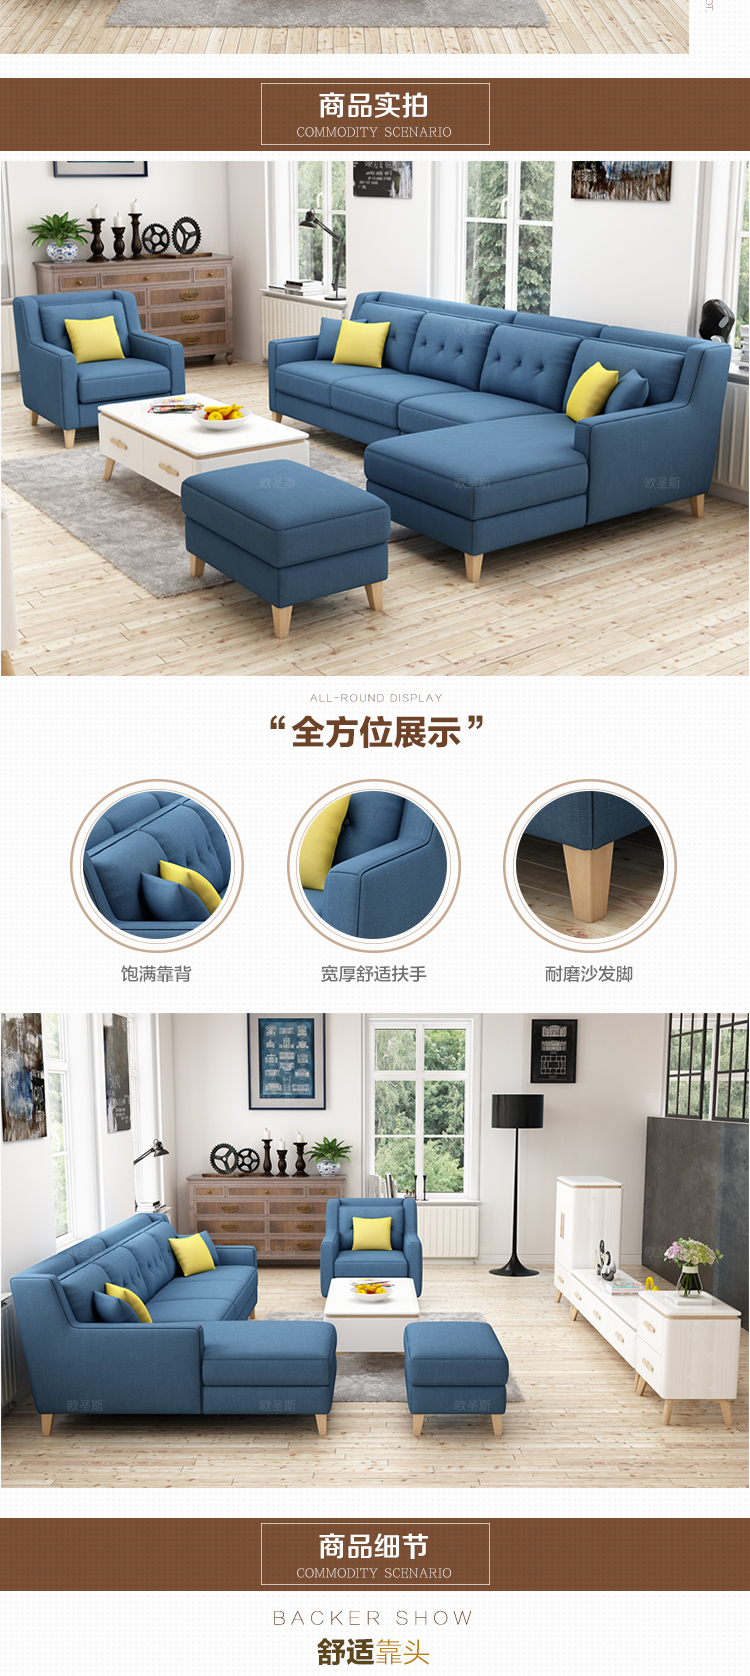 List Of Living Room Furniture. New arrival American style simple latest design sectional l shaped corner living  room furniture fabric sofa set prices list F76F